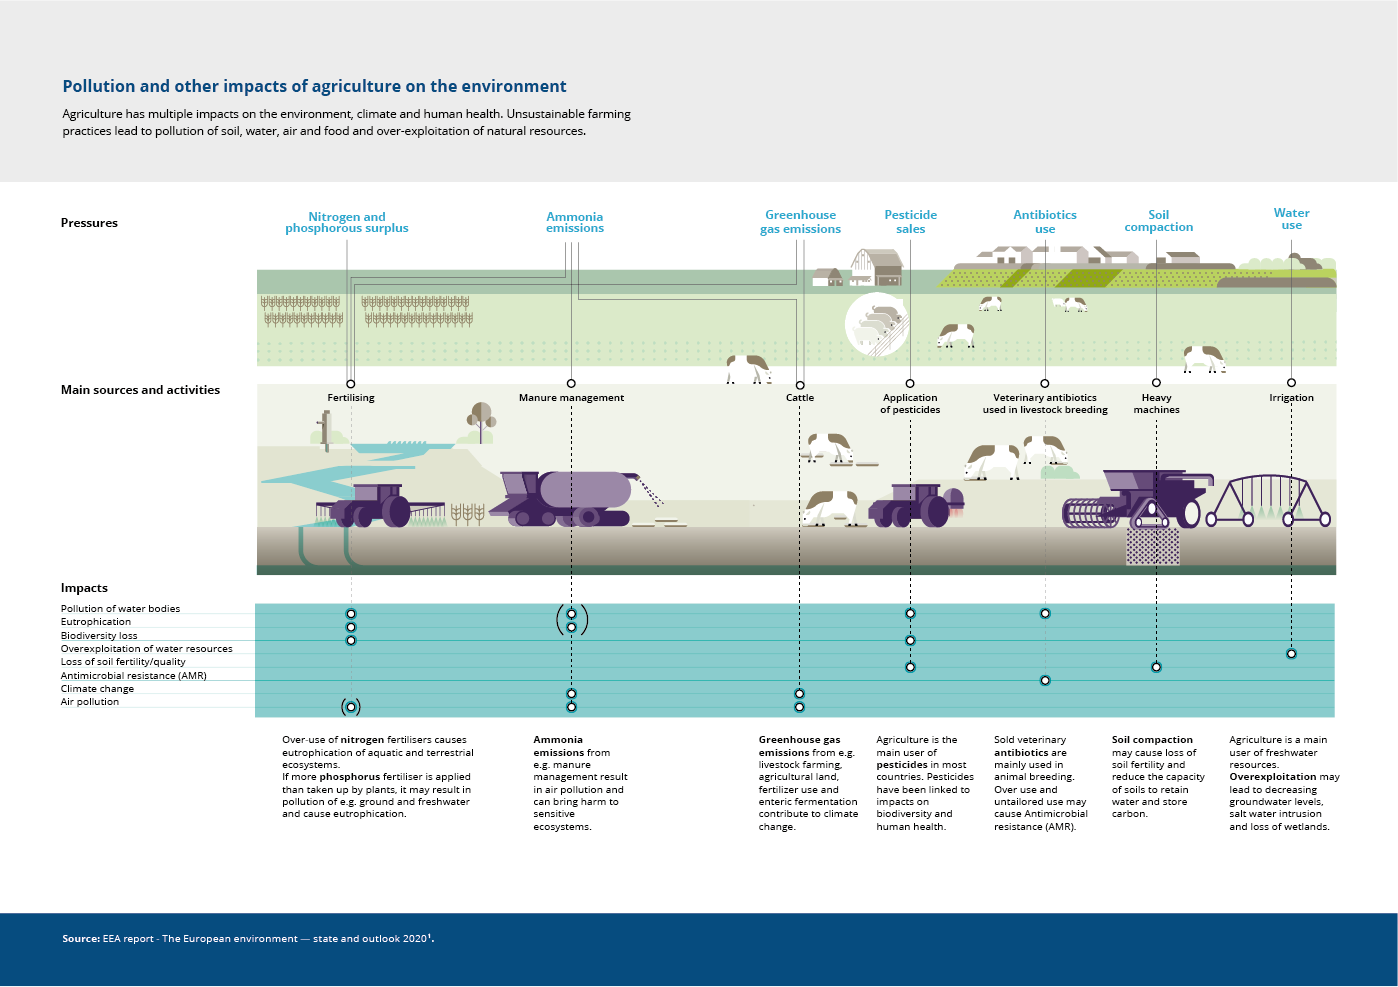 Pollution and other impacts of agriculture on the environment